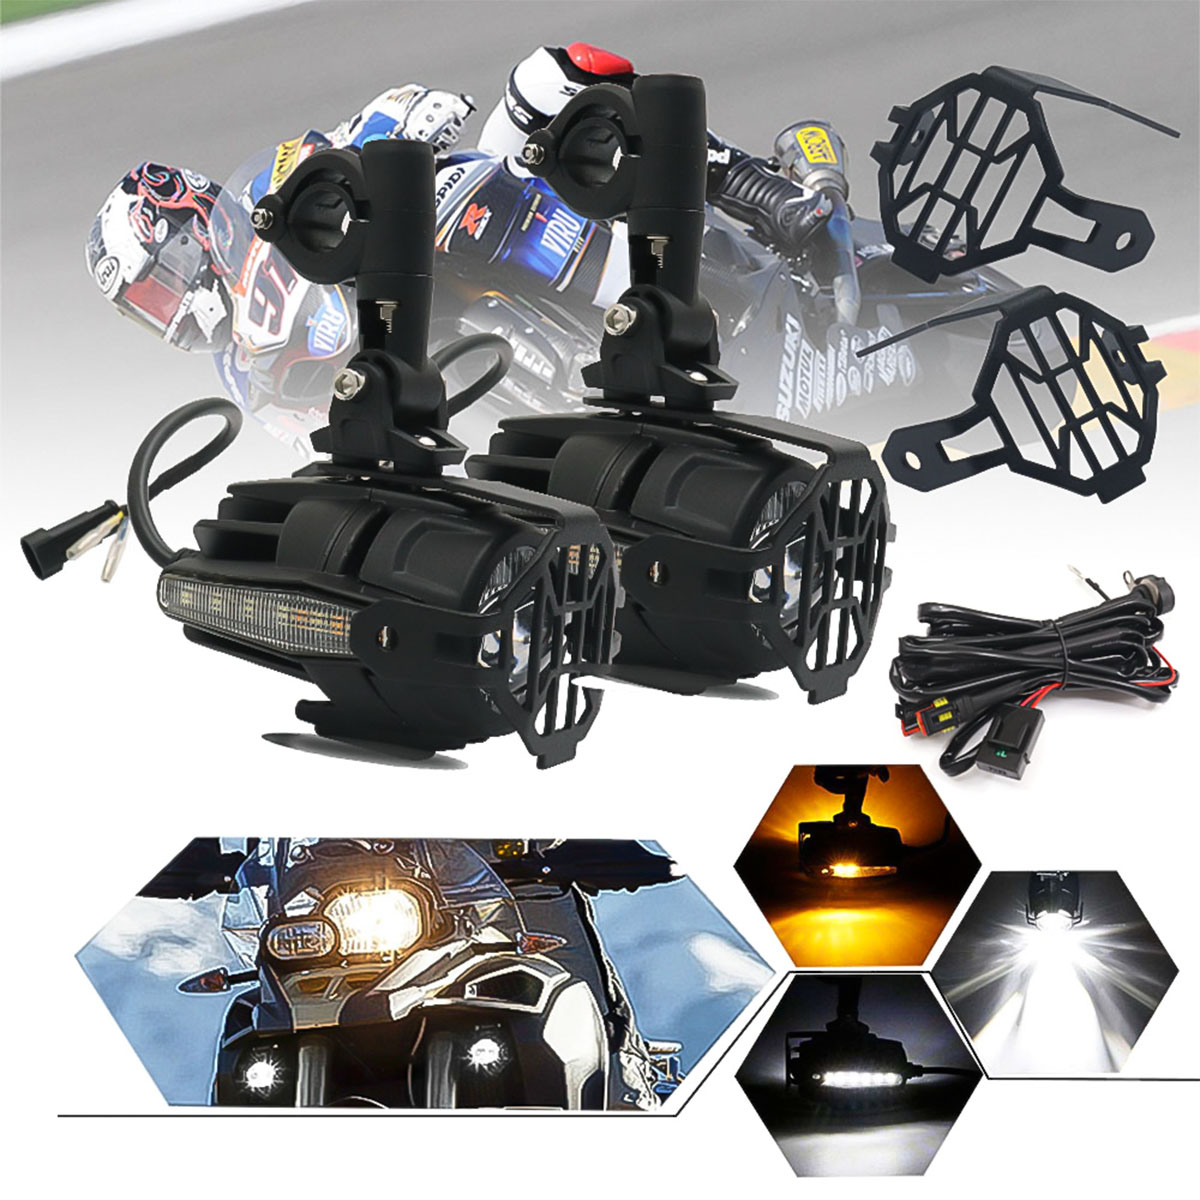 Wihtie + Amber W/ Side Light Pair 40W 4000LM 6500K Motorcycle LED Auxiliary Fog Spot Light Safety Driving Lamp Signal Light For BMW R1200GS ADV